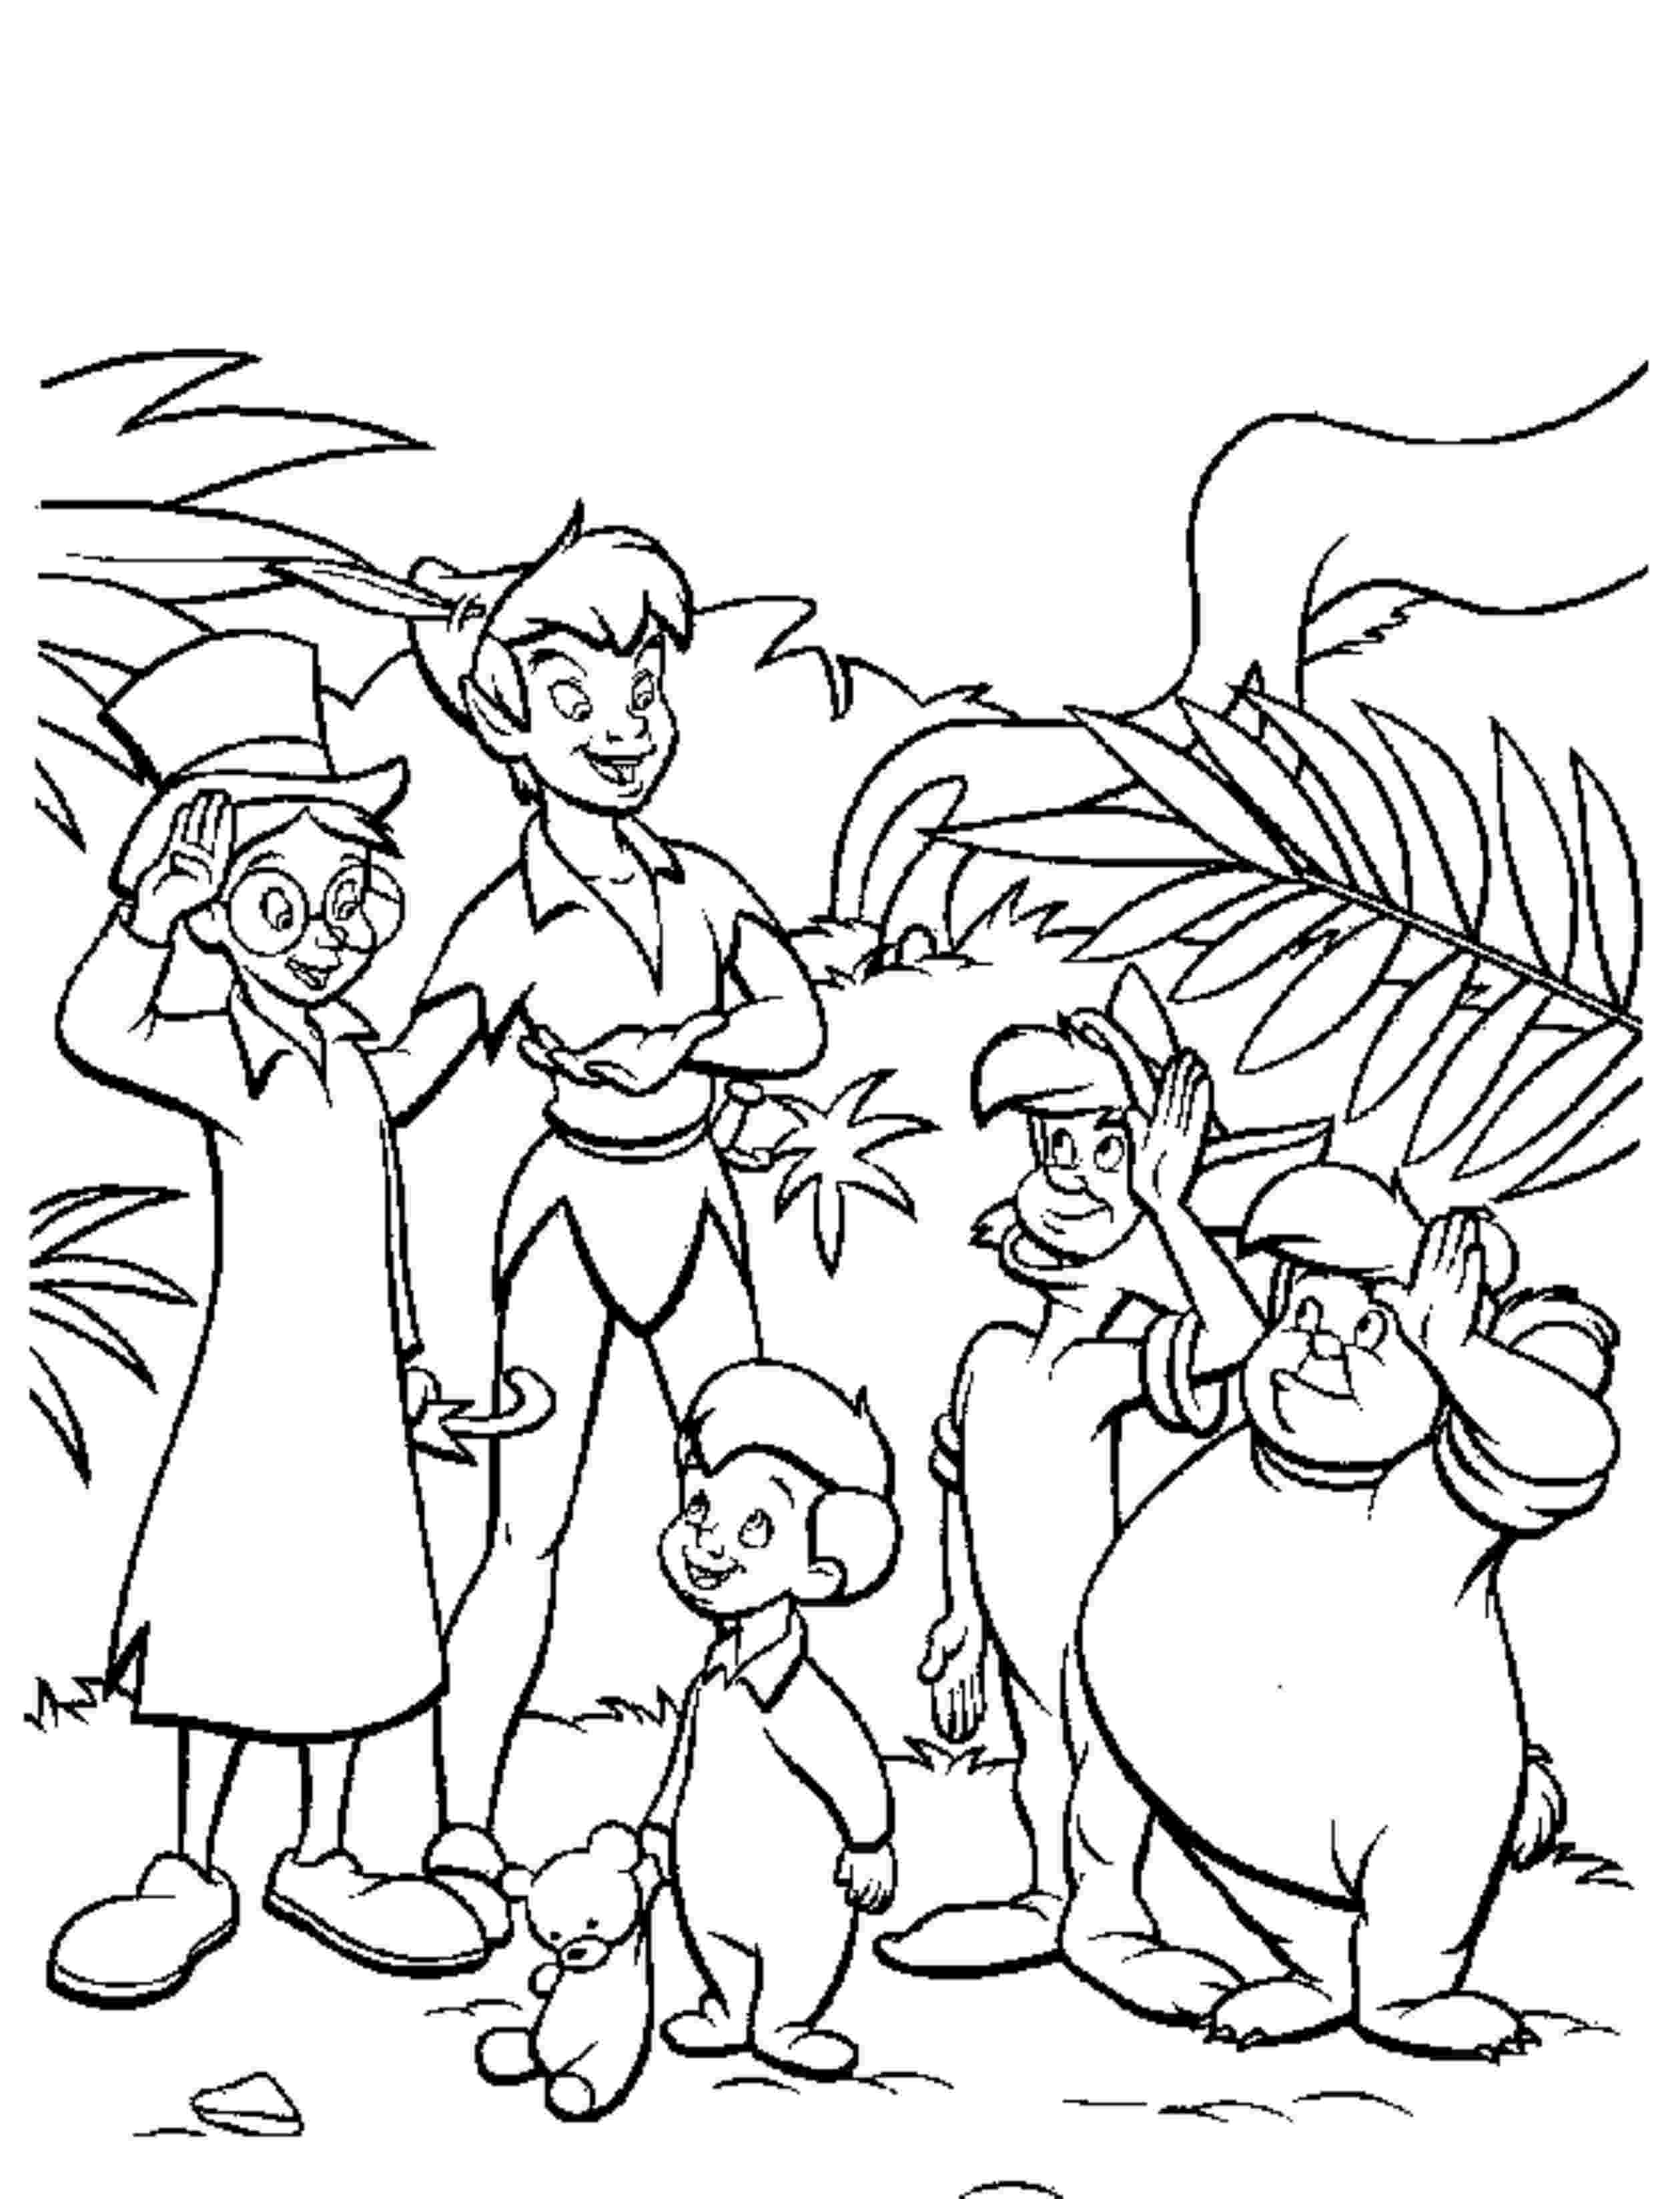 Peter Pan Coloring Pages Printable At Getdrawings Com Free For